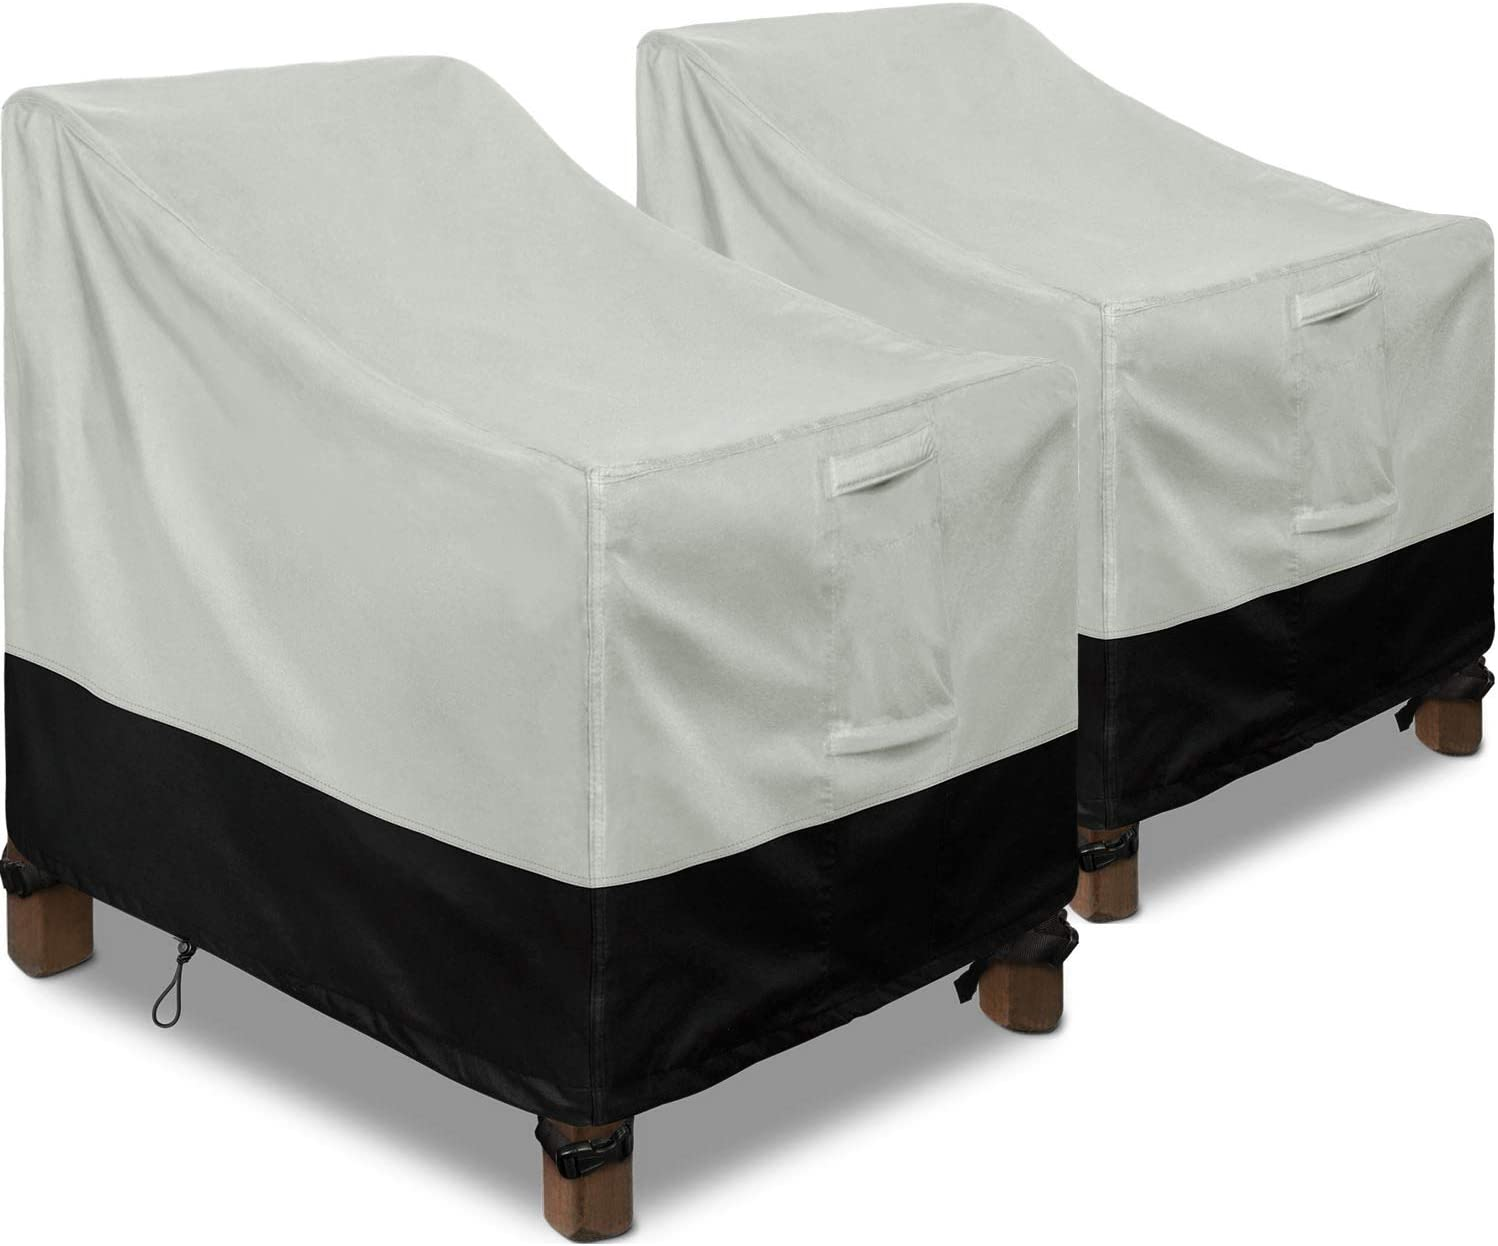 Patio Chair Covers, 2 Pack Lounge Deep Seat Cover 30